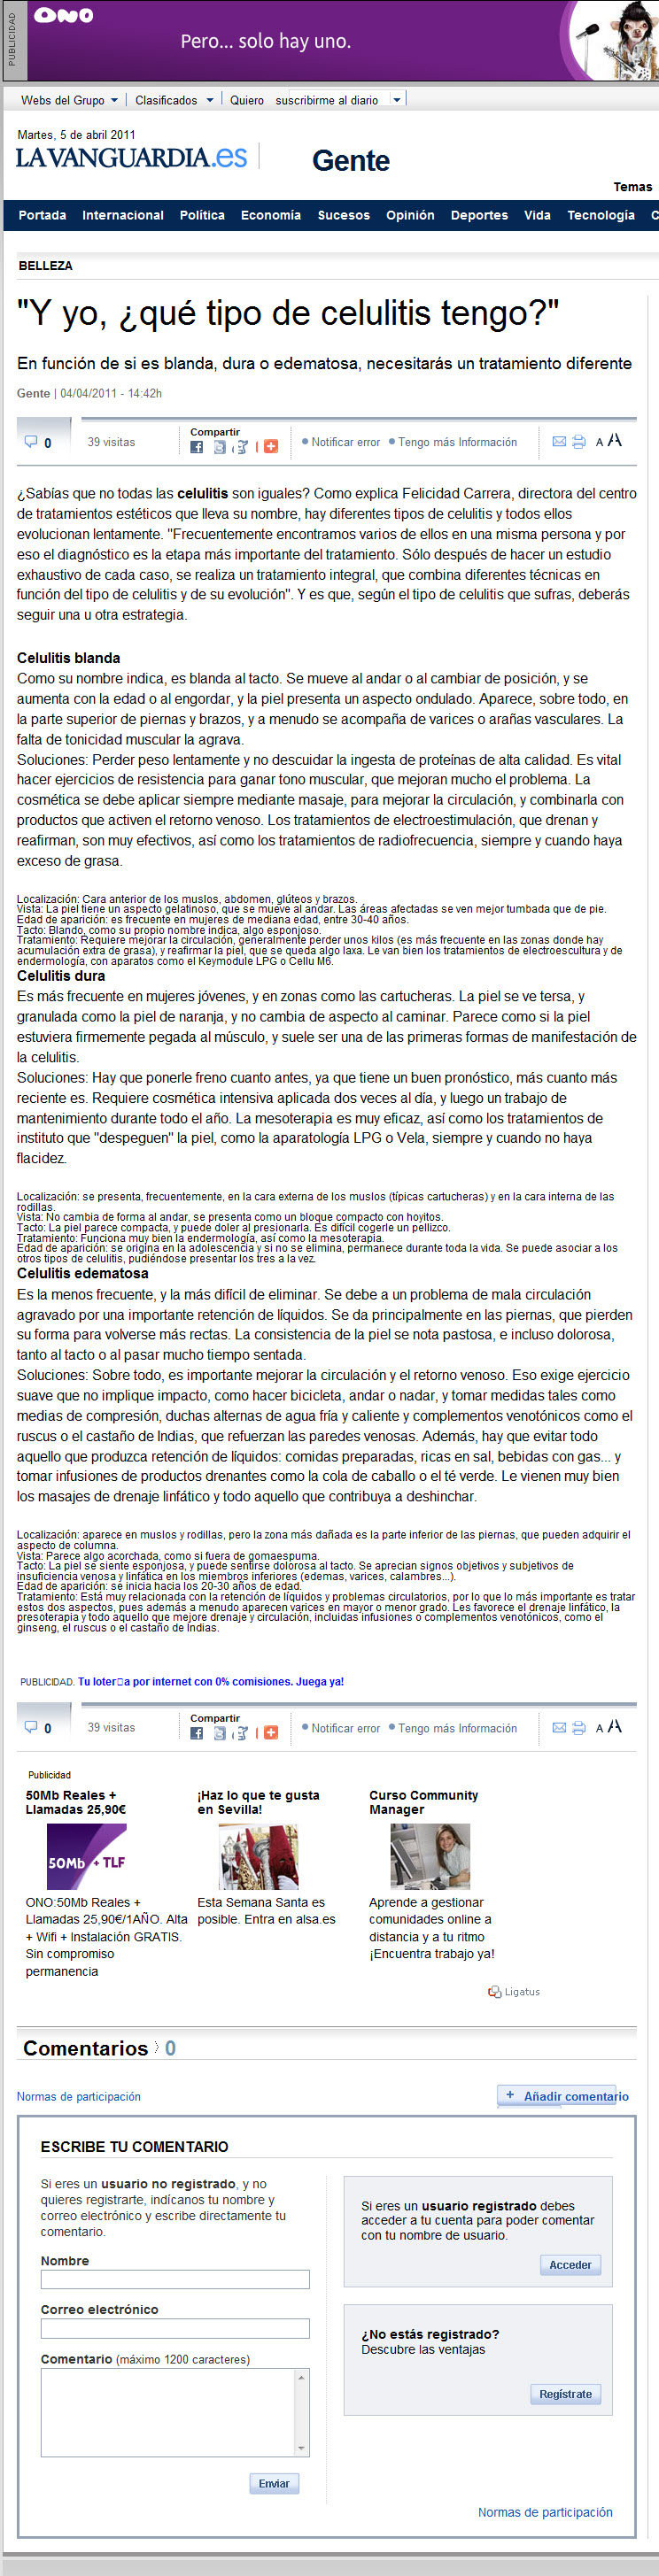 Lavanguardia.es_5abril2011